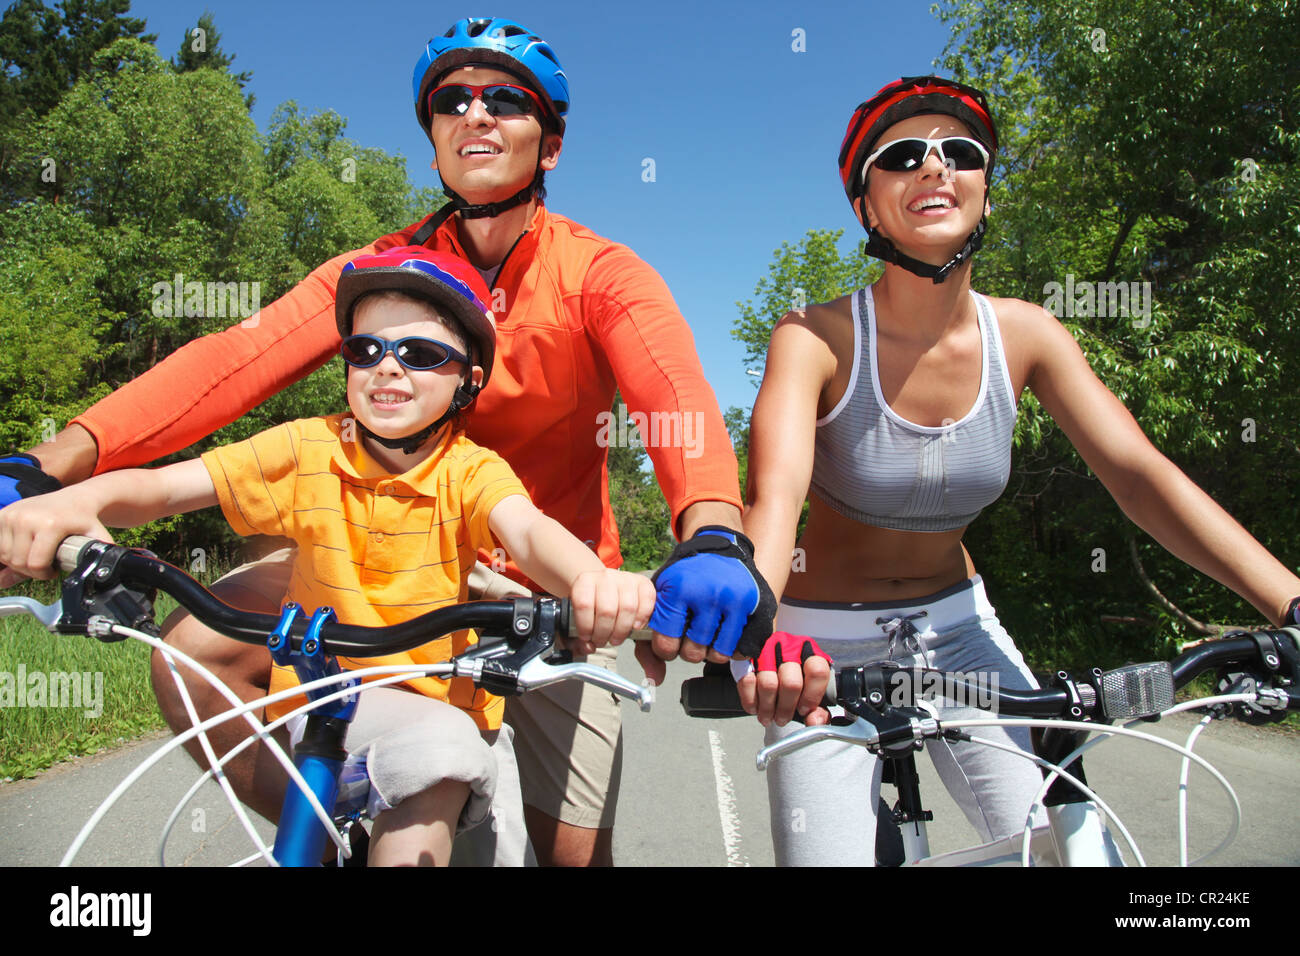 Portrait of happy family on bicycles in the park Stock Photo